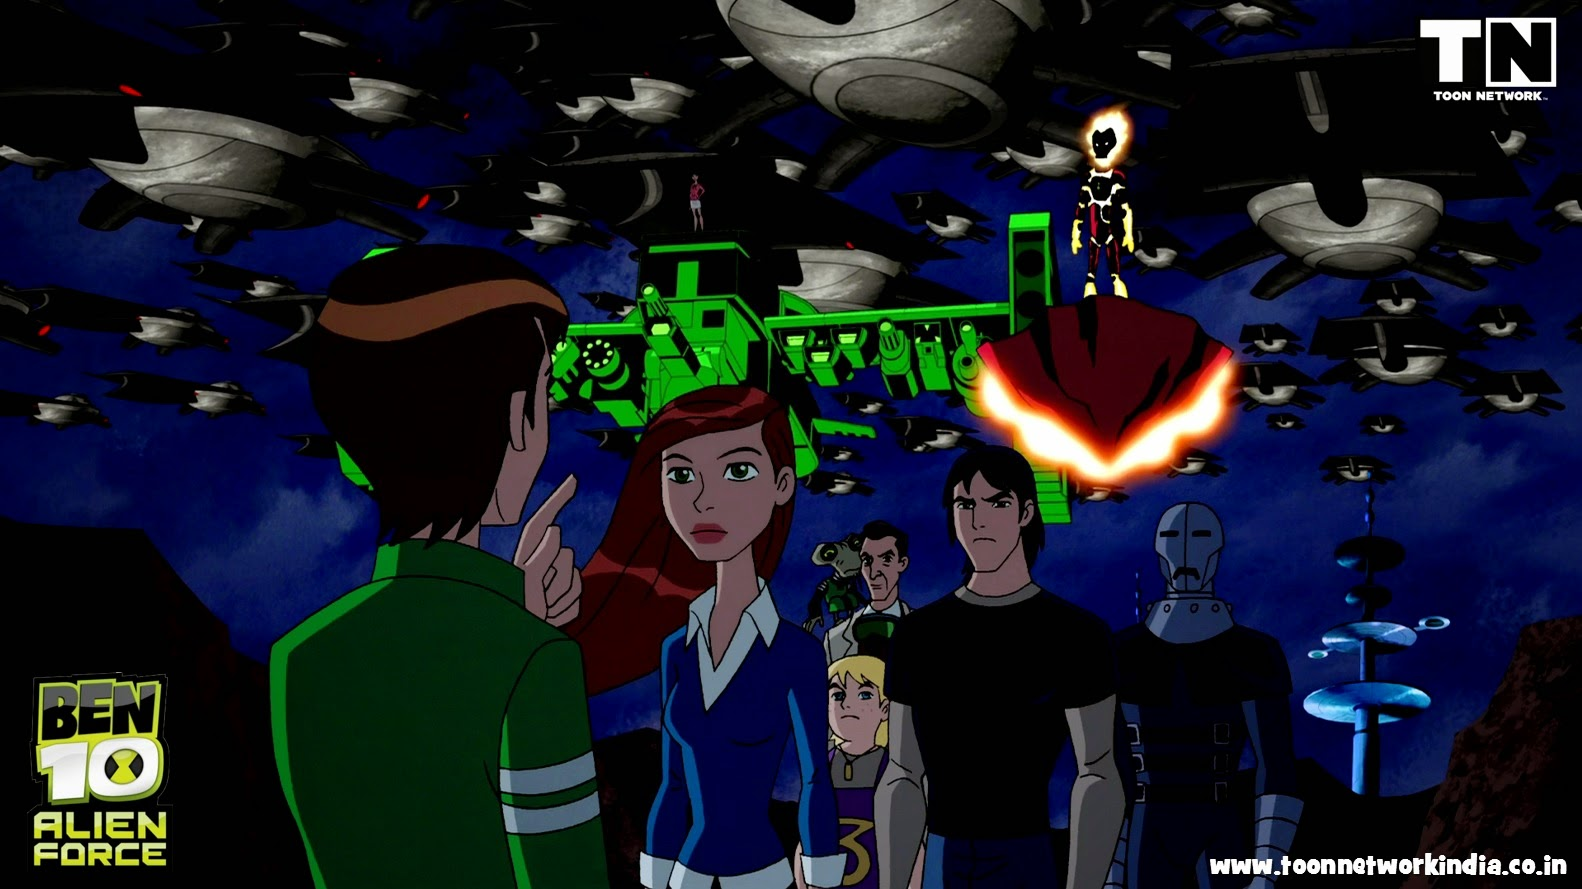 Ben 10 Alien Force Wallpapers Posted By Ryan Anderson